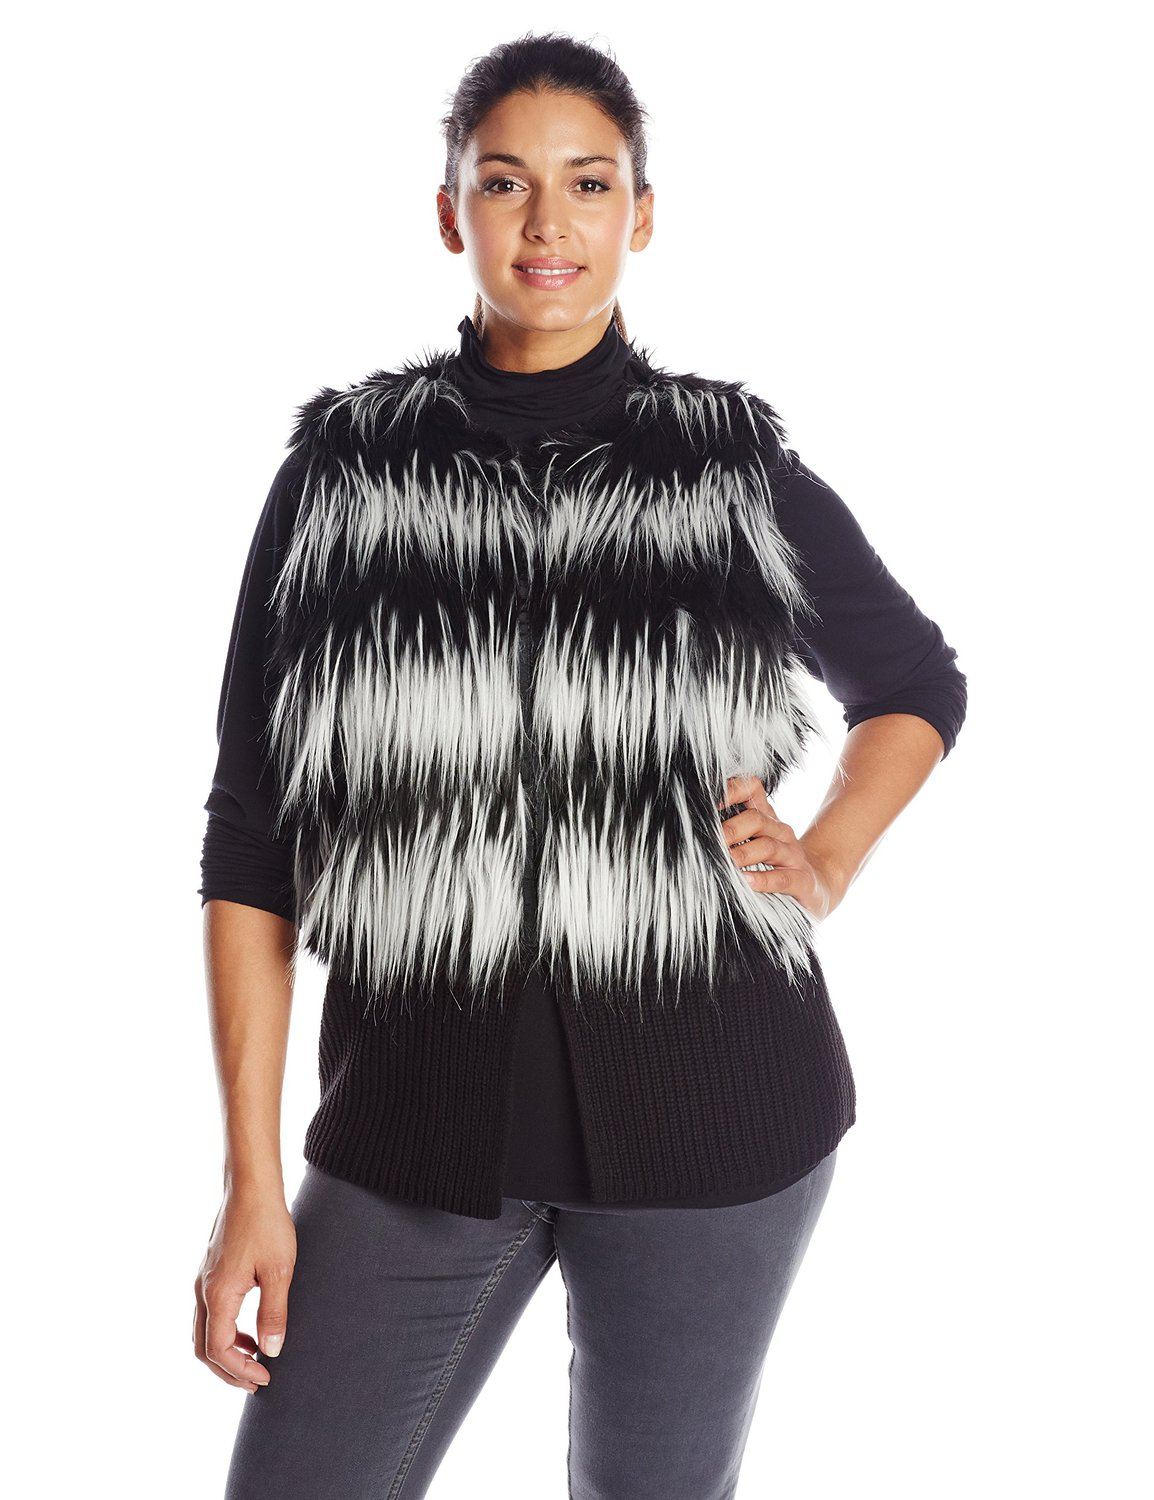 Size striped faux fur sweater vest at amazon women's clothing store: